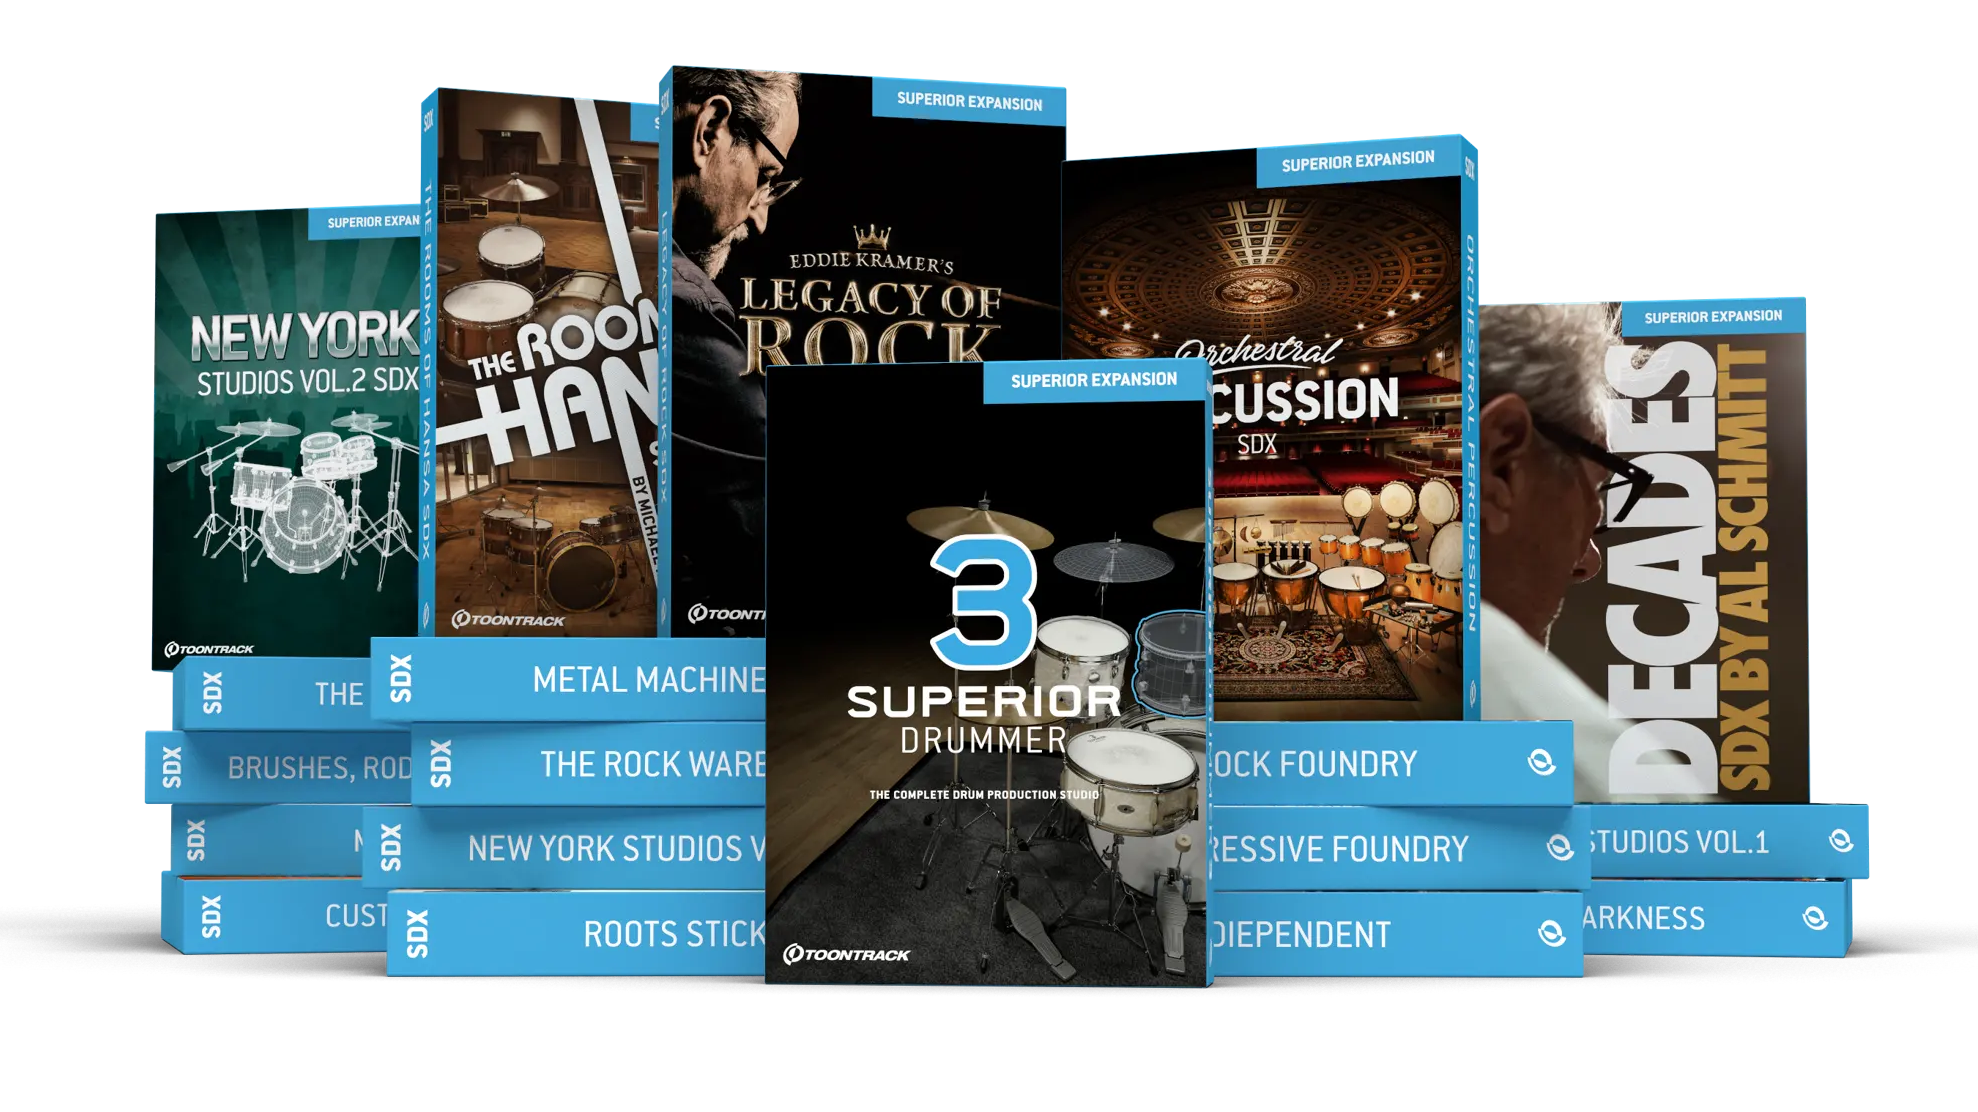 Superior Drummer 3 & SDX Expansions Family